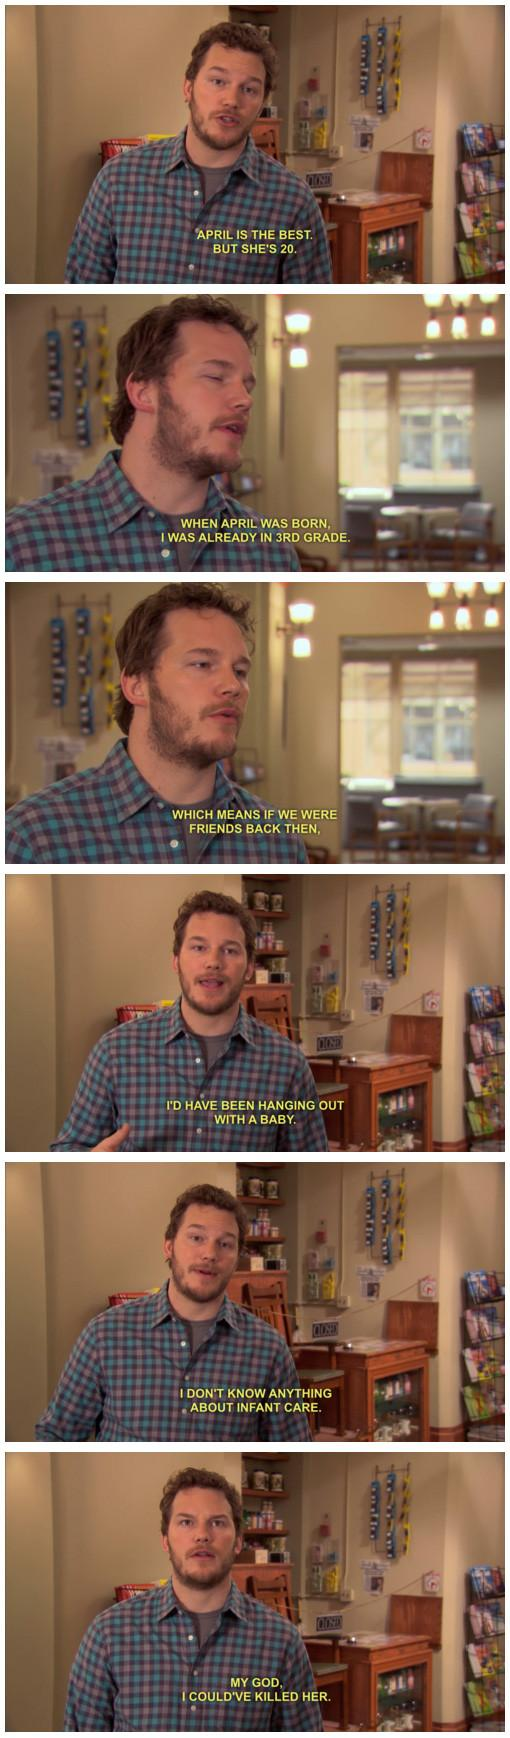 andy parks and recreation - photo #26